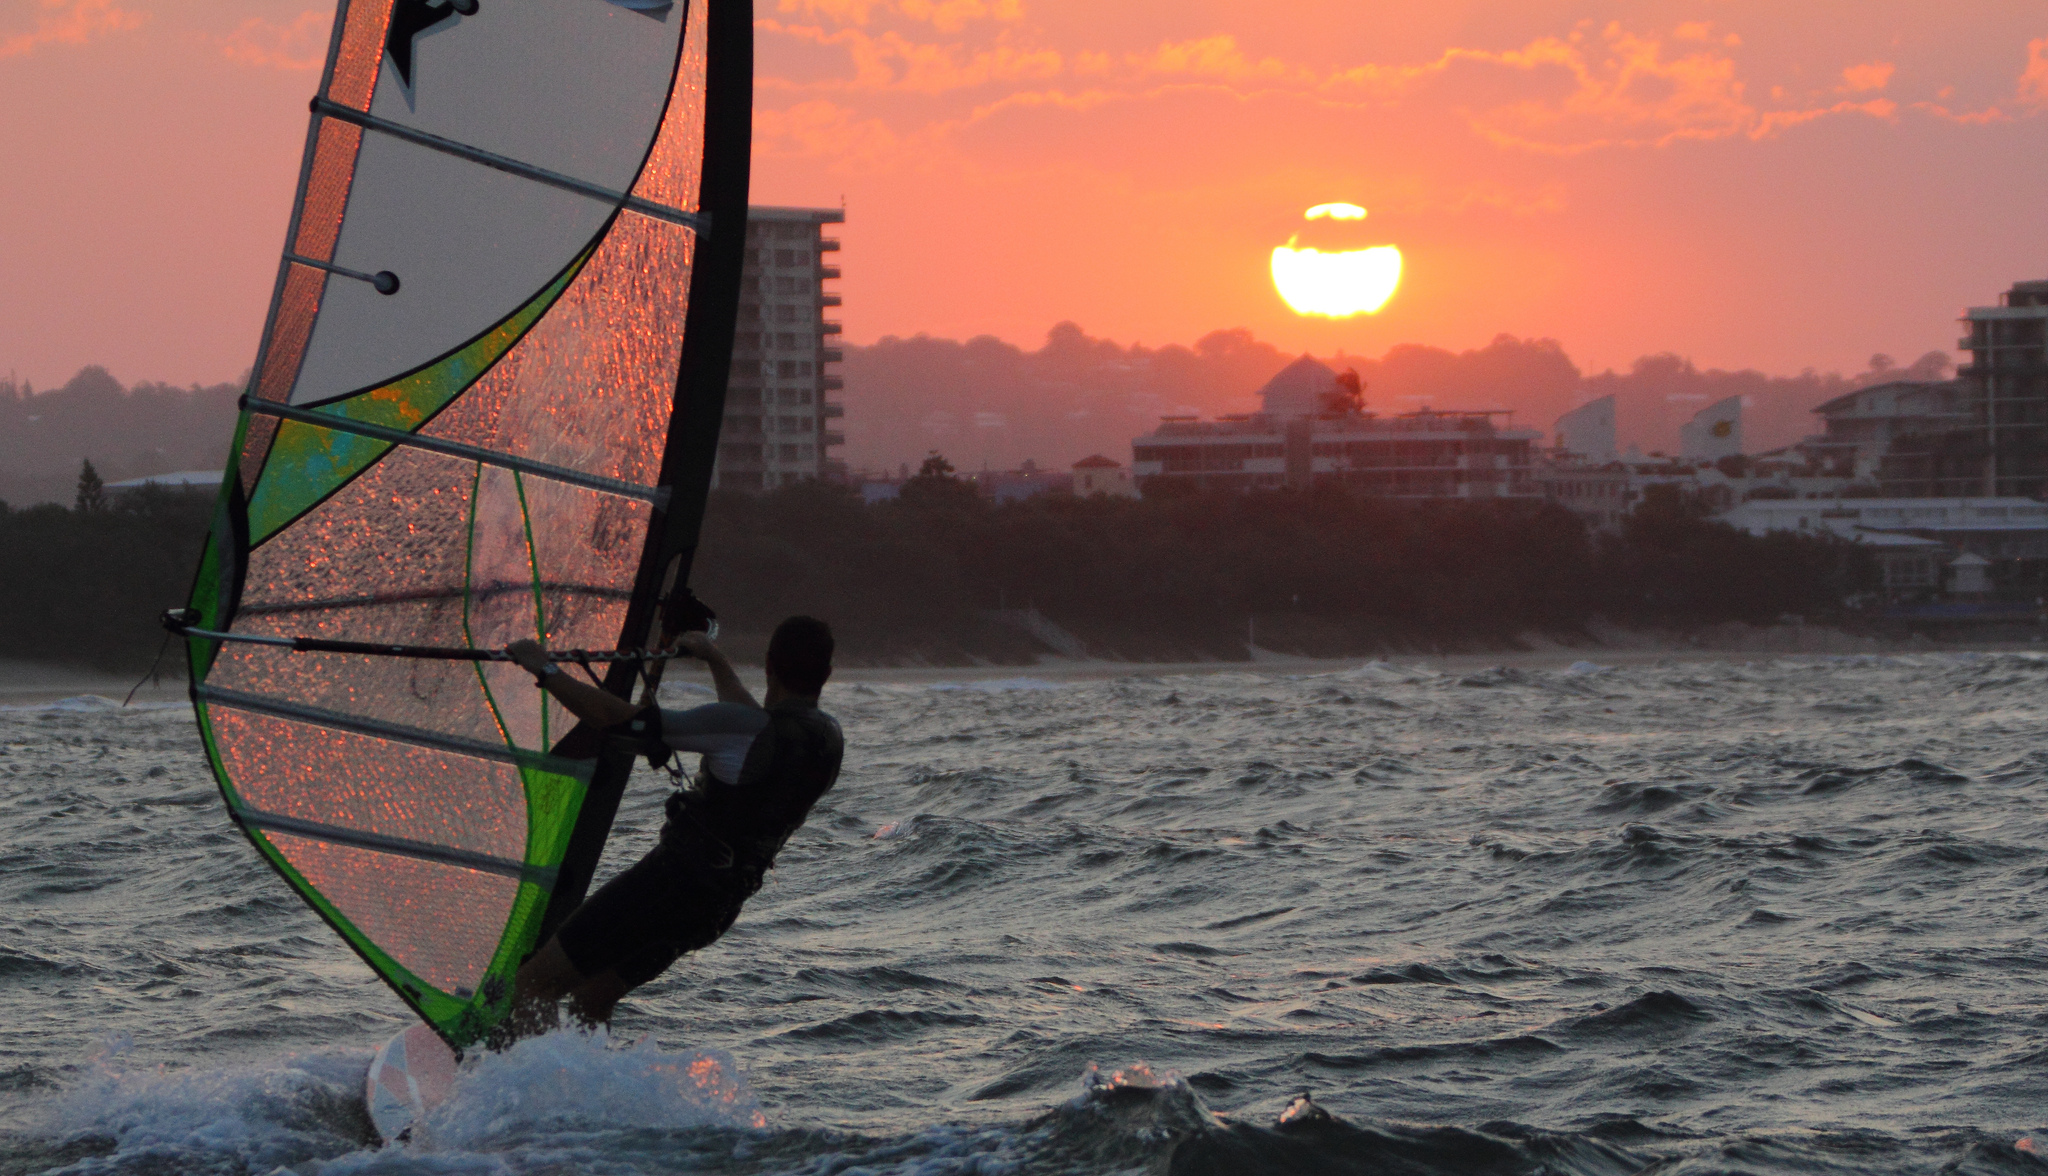 """Windsurfing Mooloolaba"" by Texaus1 via Flickr Creative Commons"